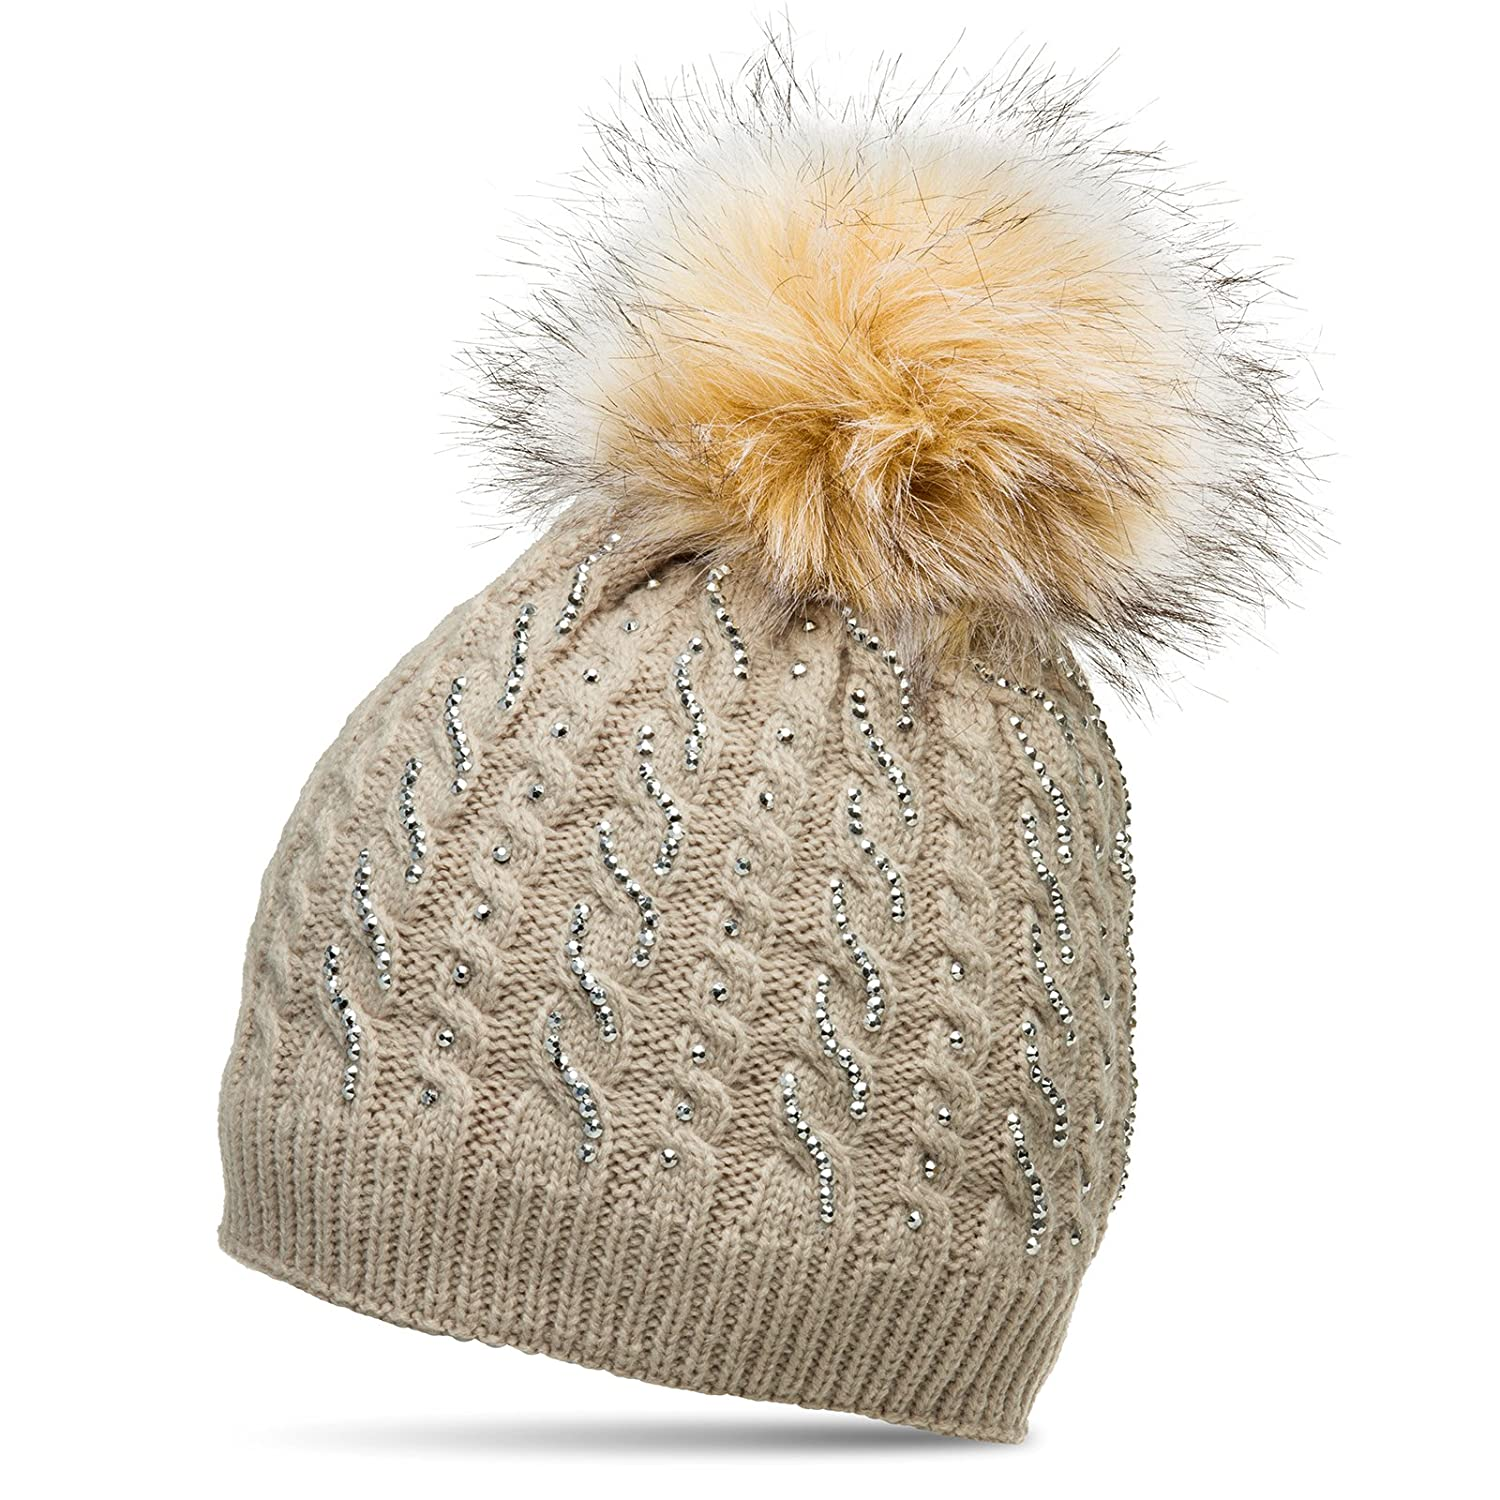 a82fa9aaca8 CASPAR MU166 Glamourous Women Winter Bobble Hat with Faux Fur Pom Pom and  Strass Decor Cable Knit